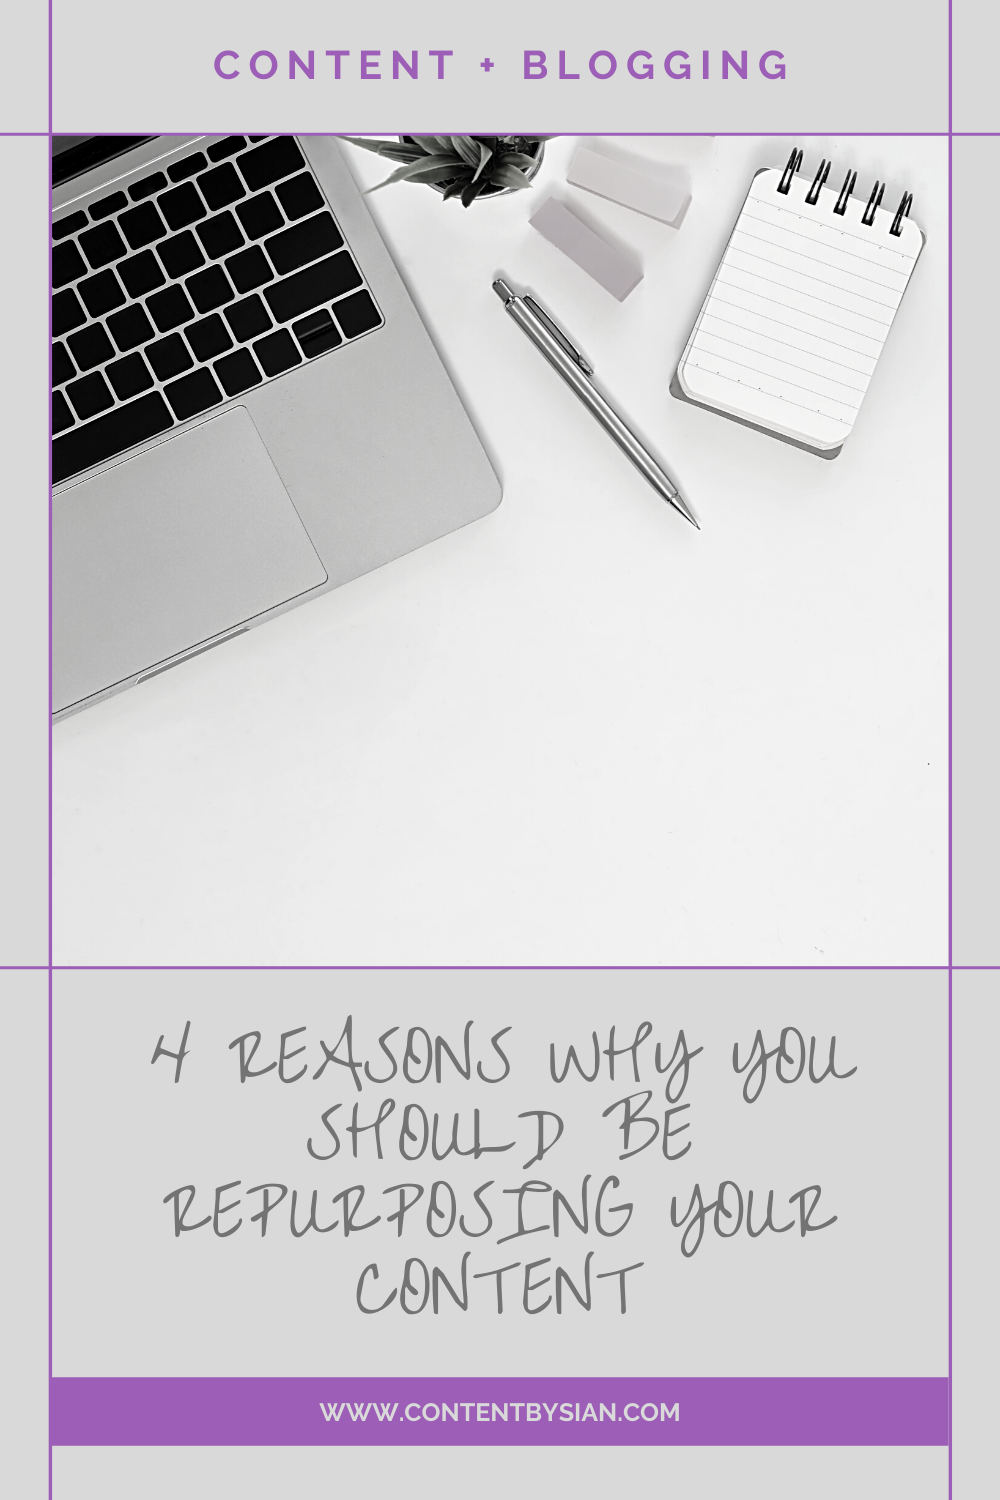 4-reasons-why-you-should-be-repurposing-your-content-pinterest